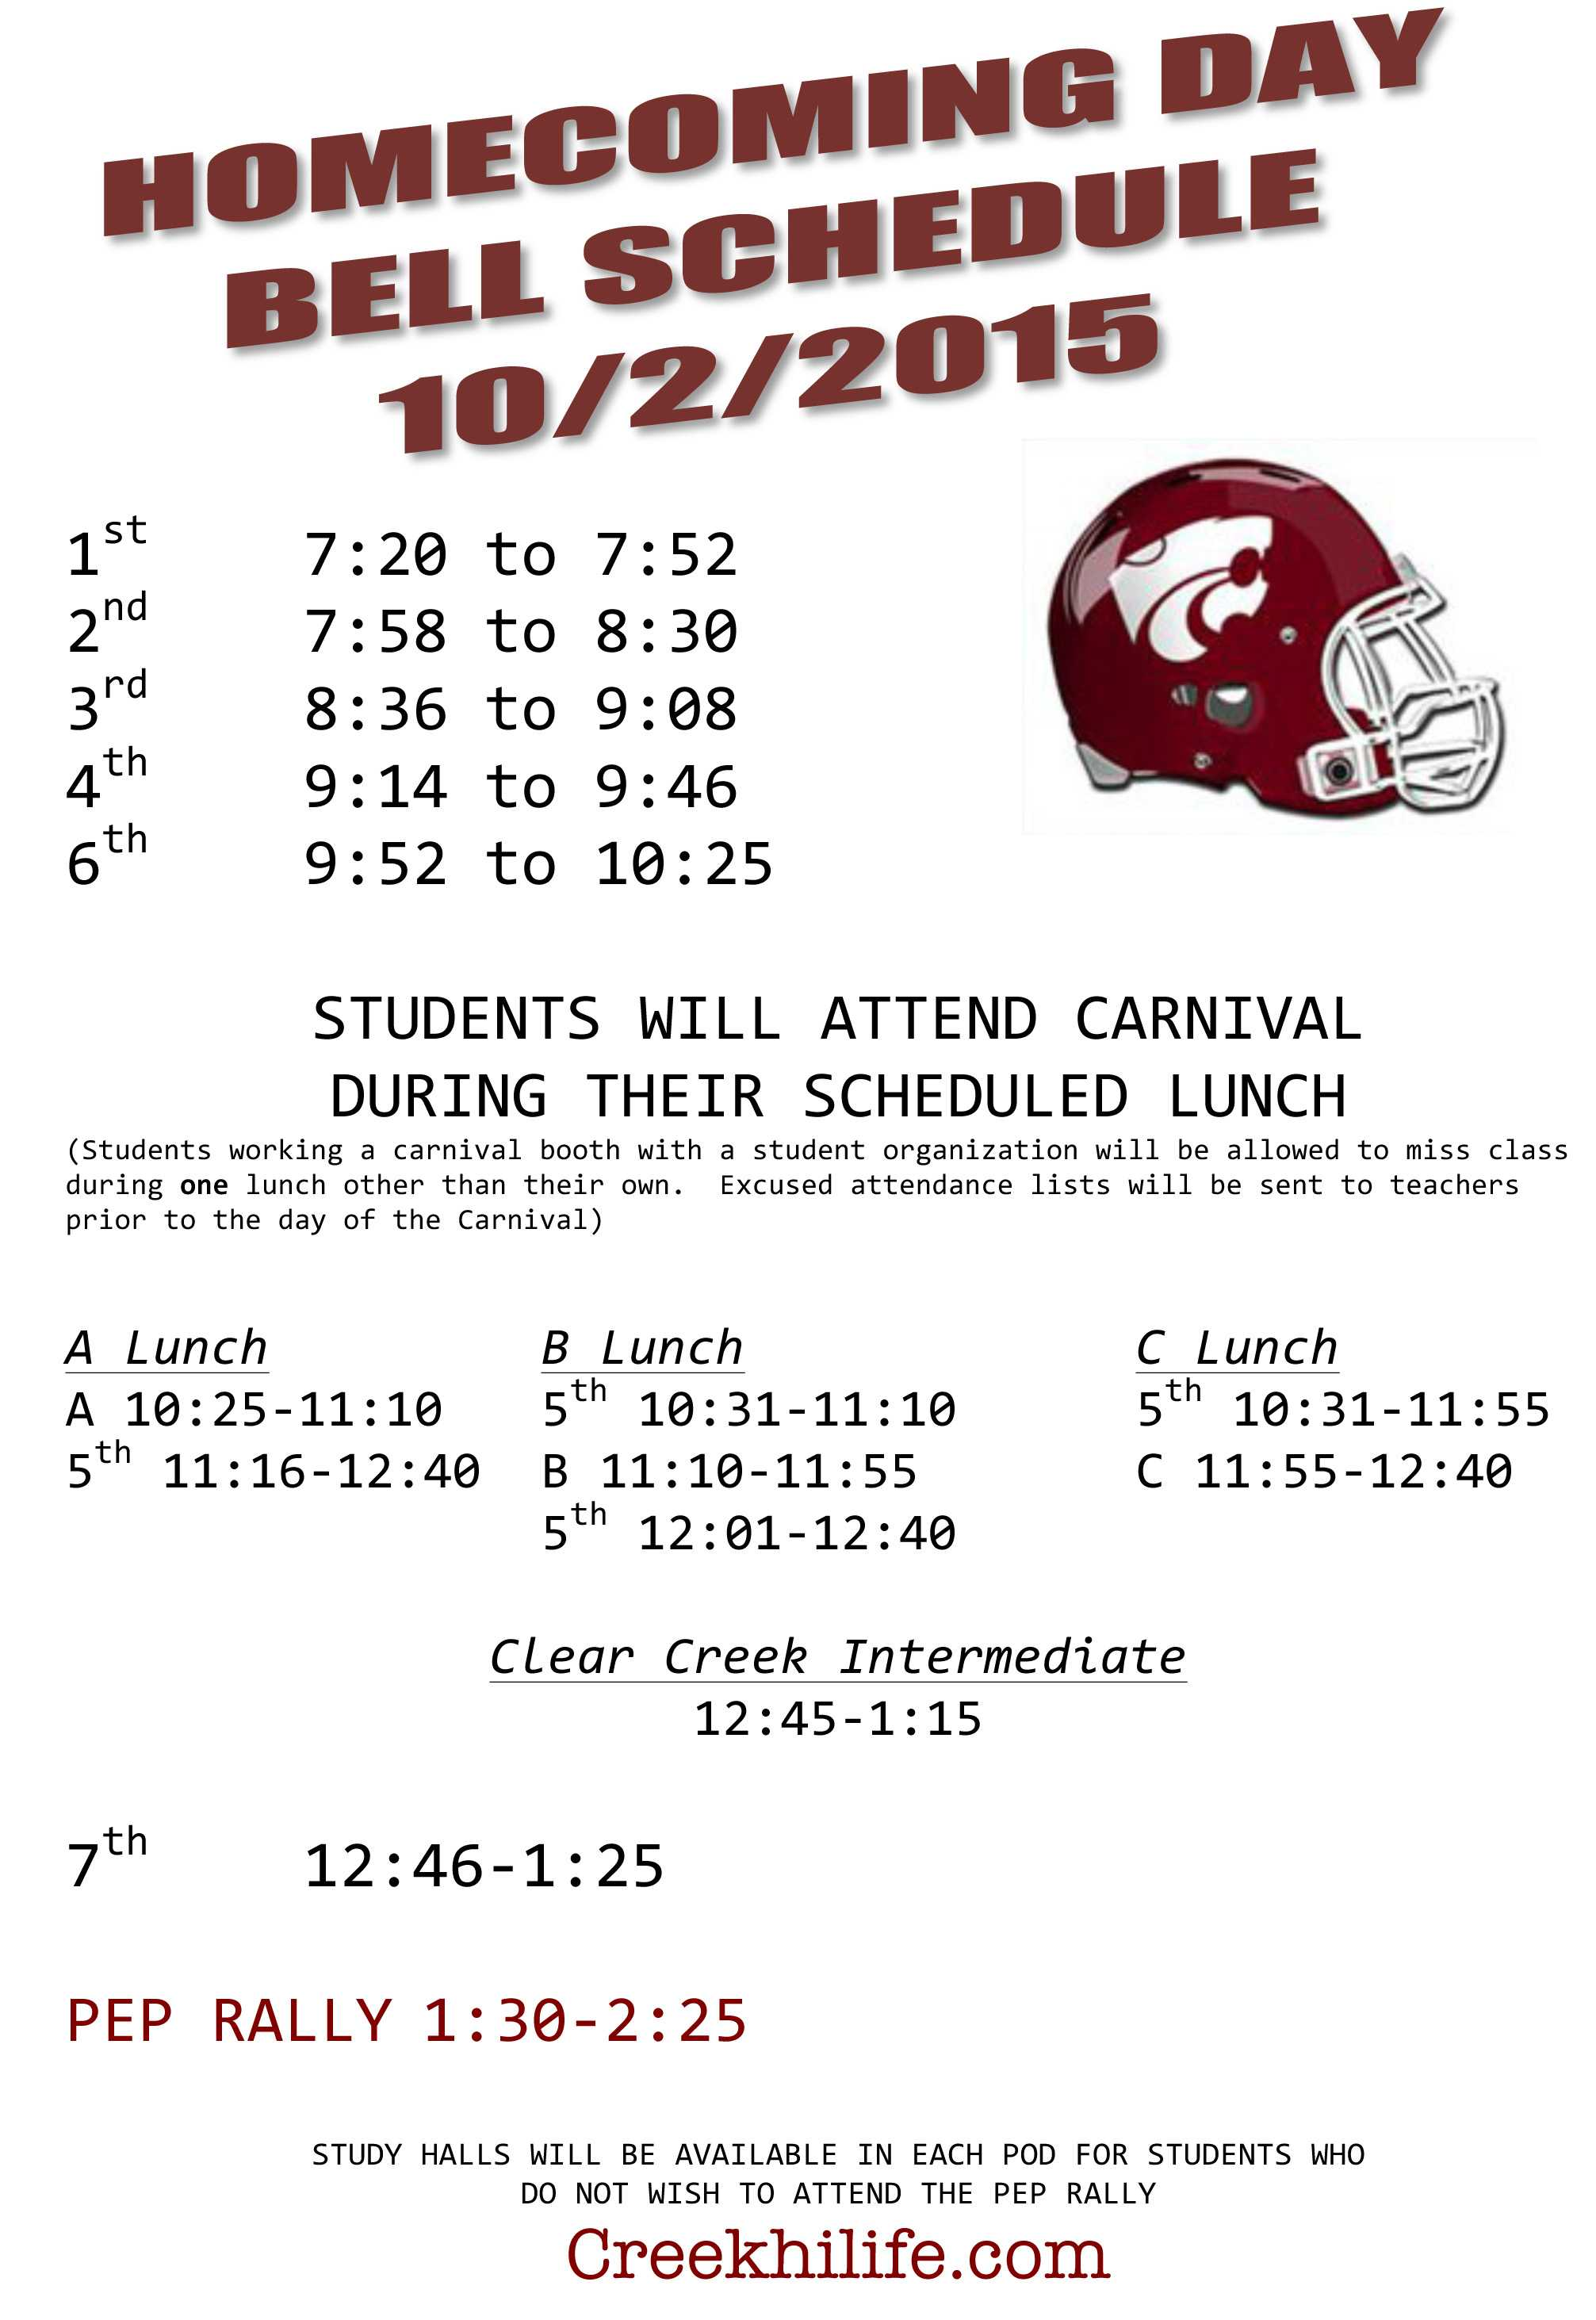 Microsoft Word - 2015  Homecoming Bell Schedule DRAFT.docx